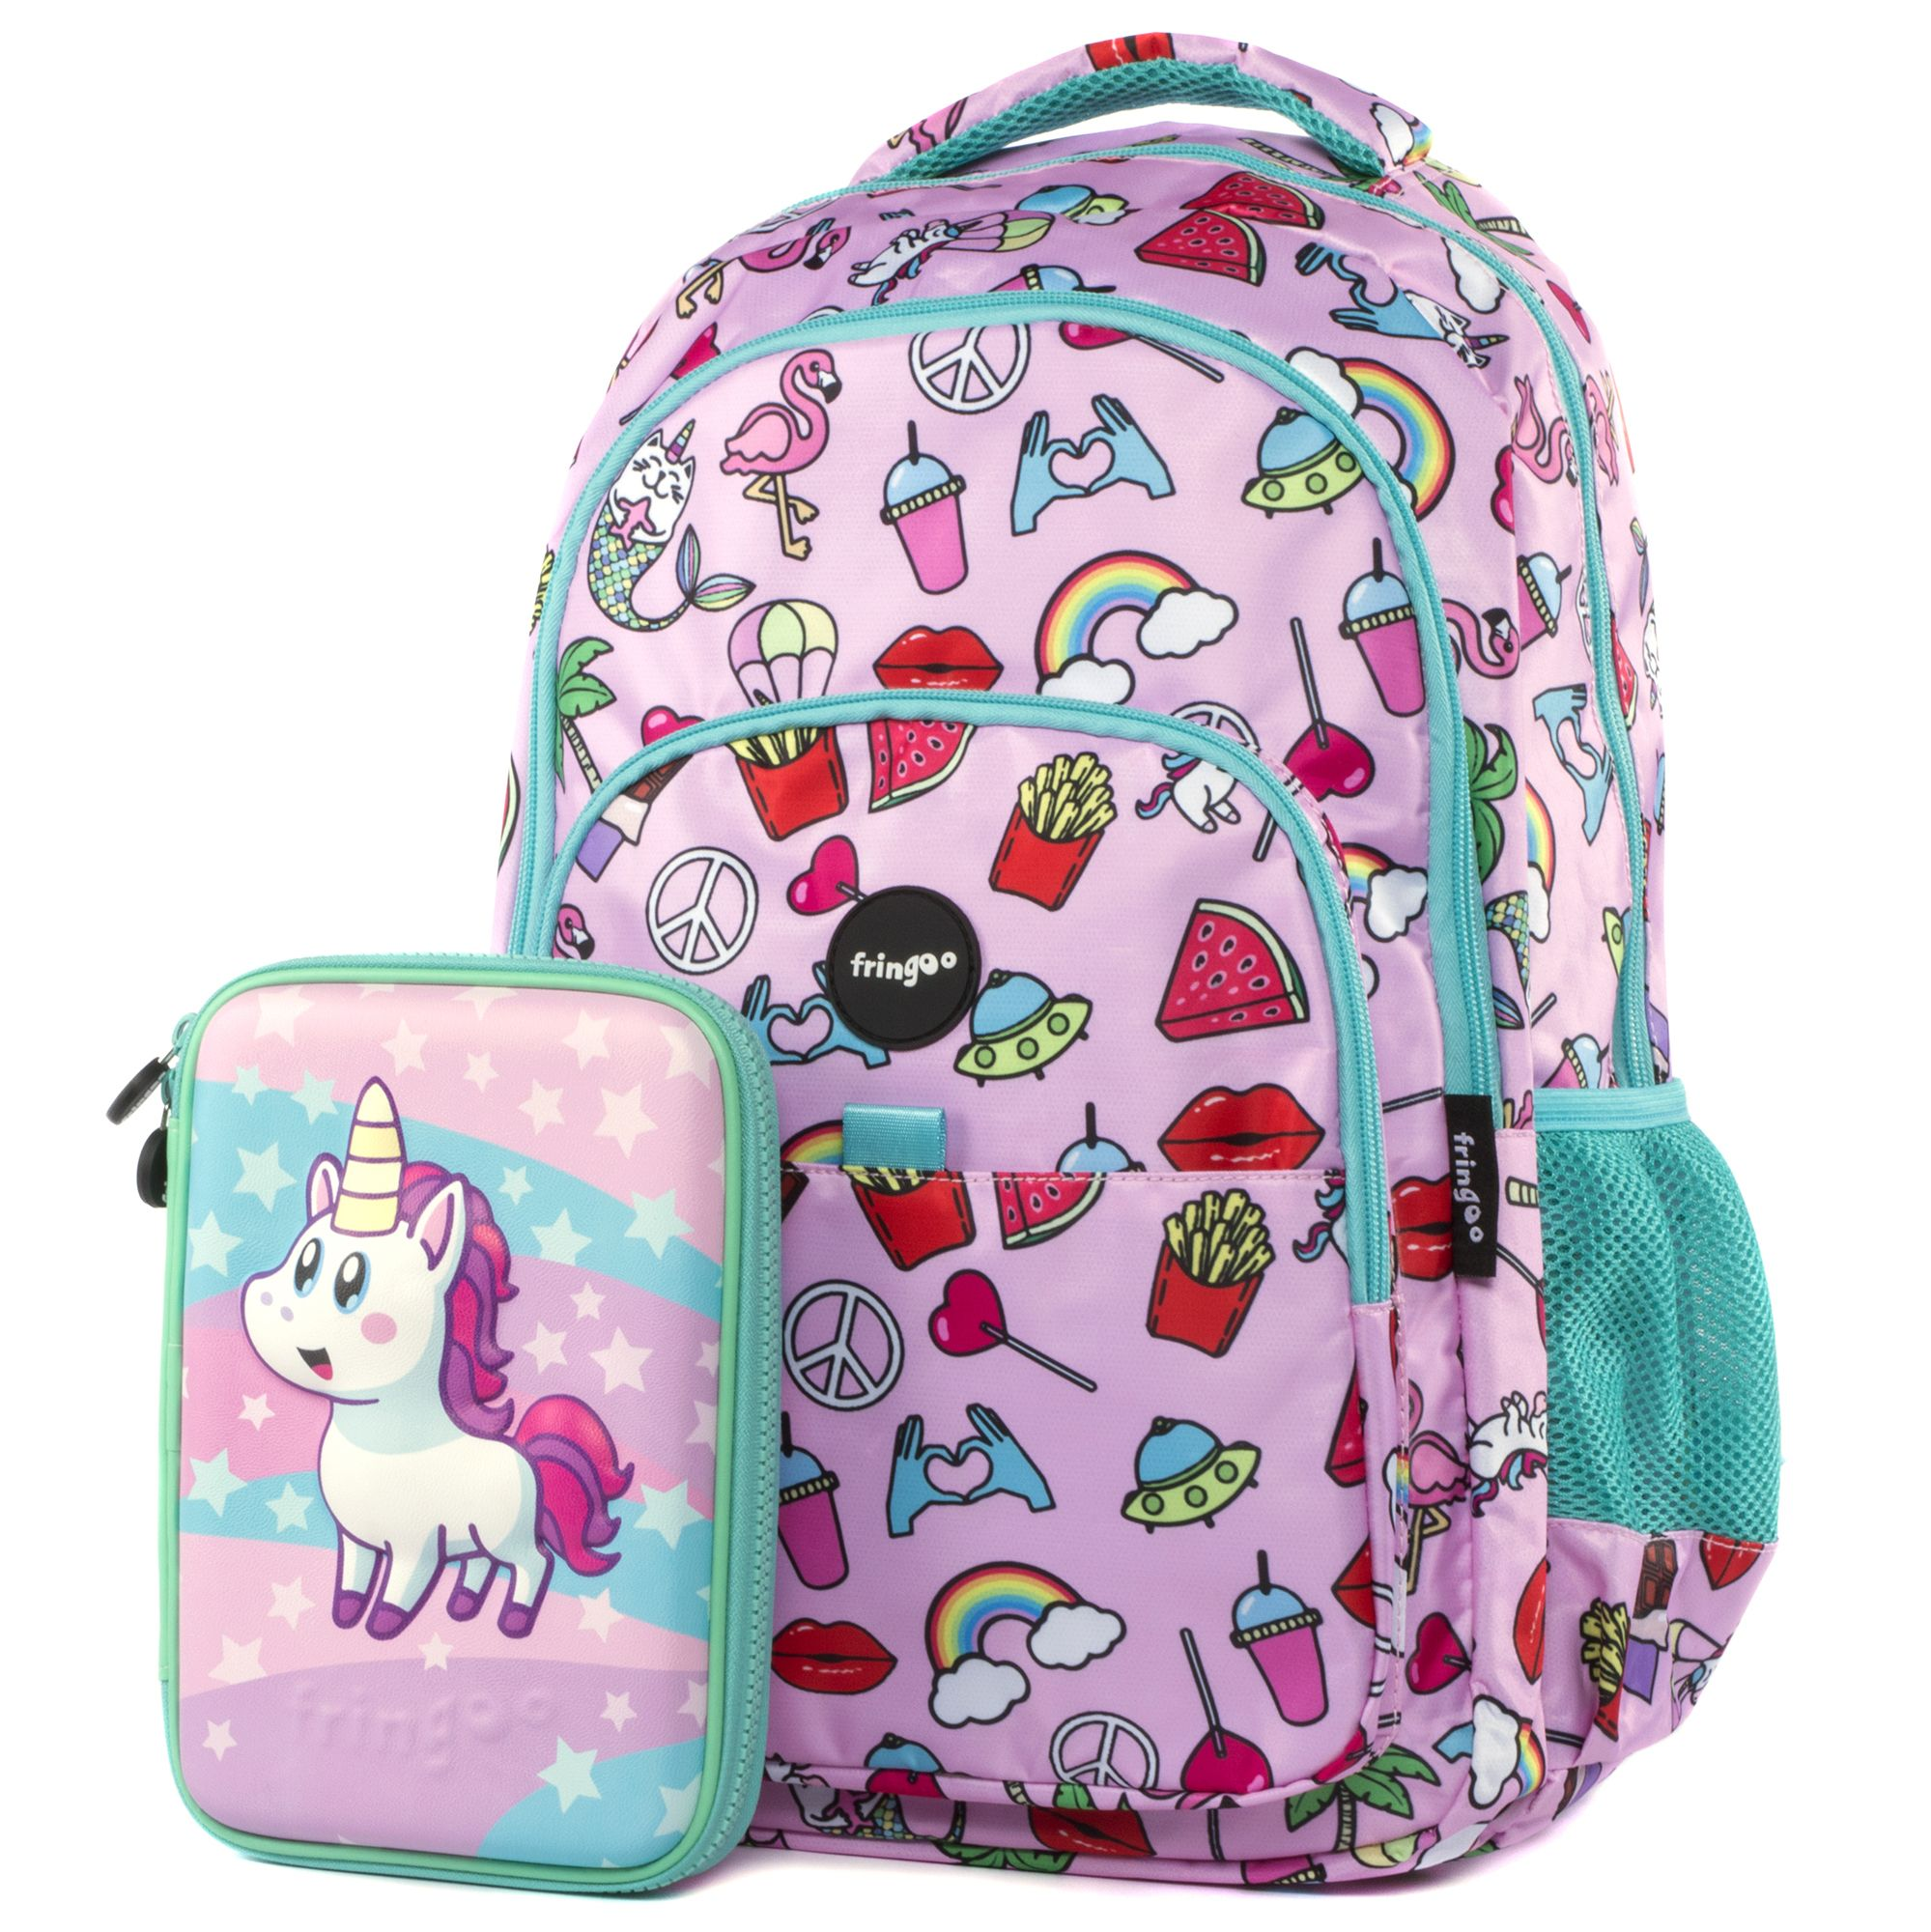 Multi Compartment Backpack - Doodles Pink in 2019  b10681852e151